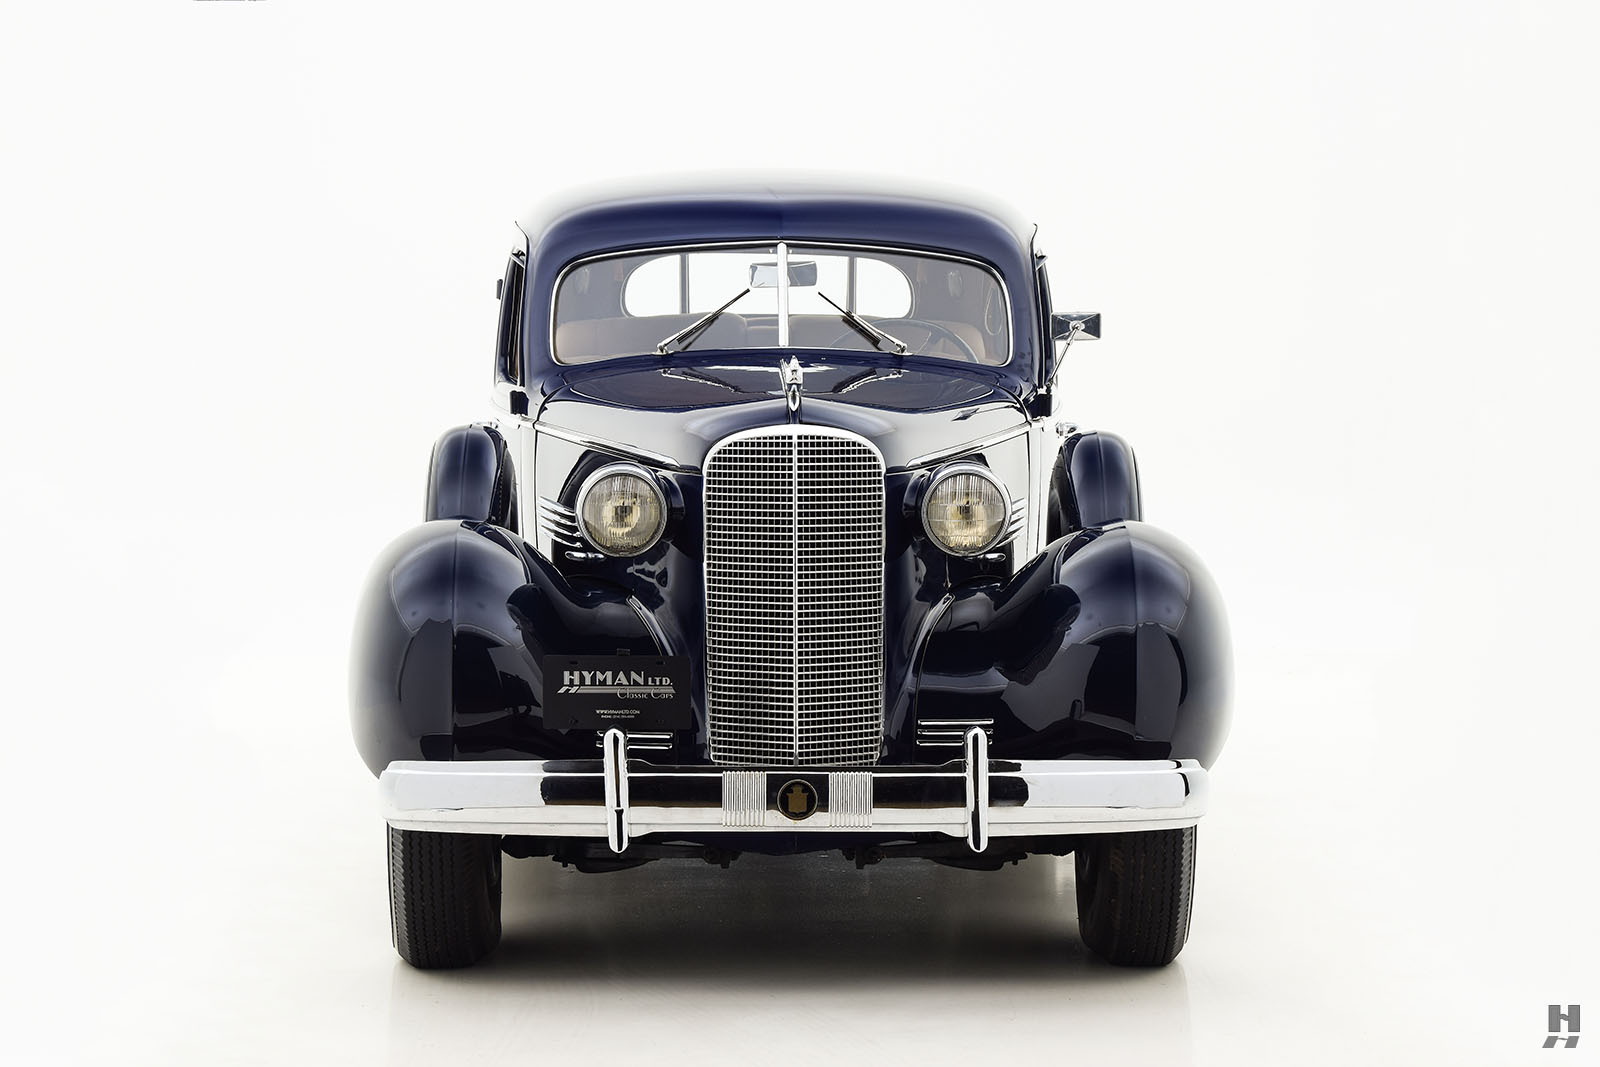 Military Tank For Sale >> 1937 Cadillac Series 75 Town Sedan For Sale | Buy Classic ...